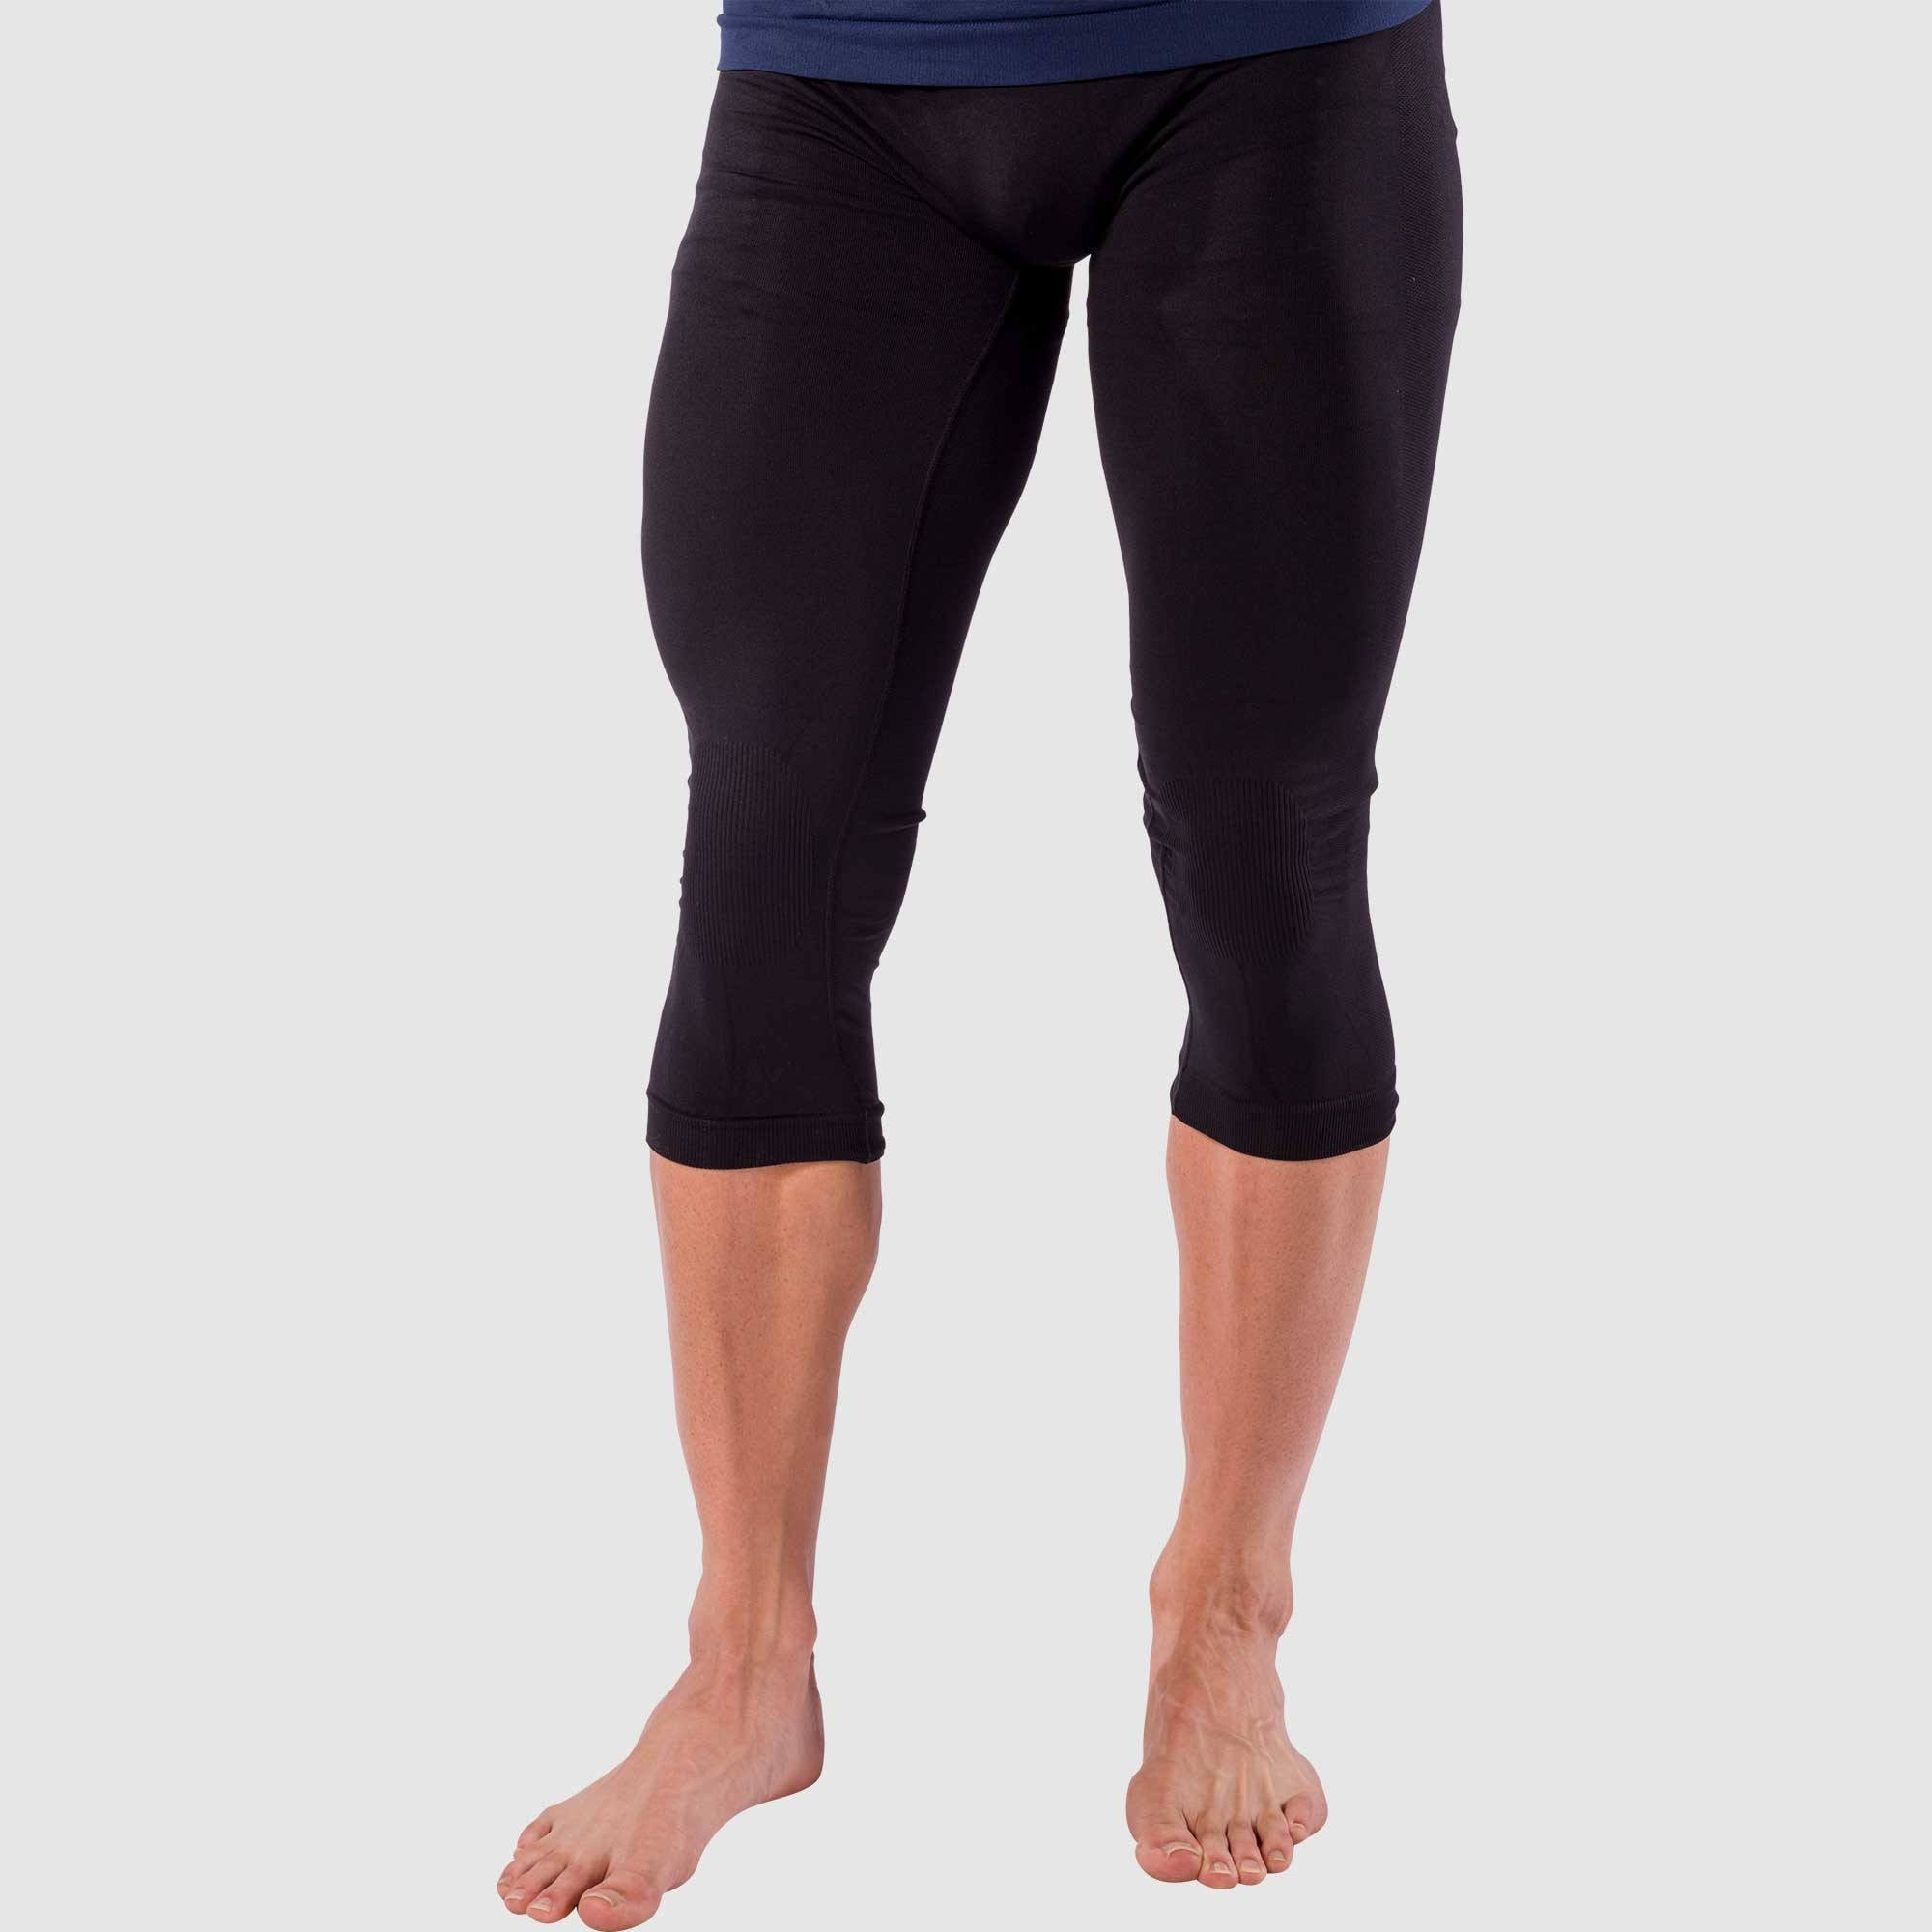 aee34e4457238 Basketball Compression Pants - 3/4 Compression Capris | Zensah